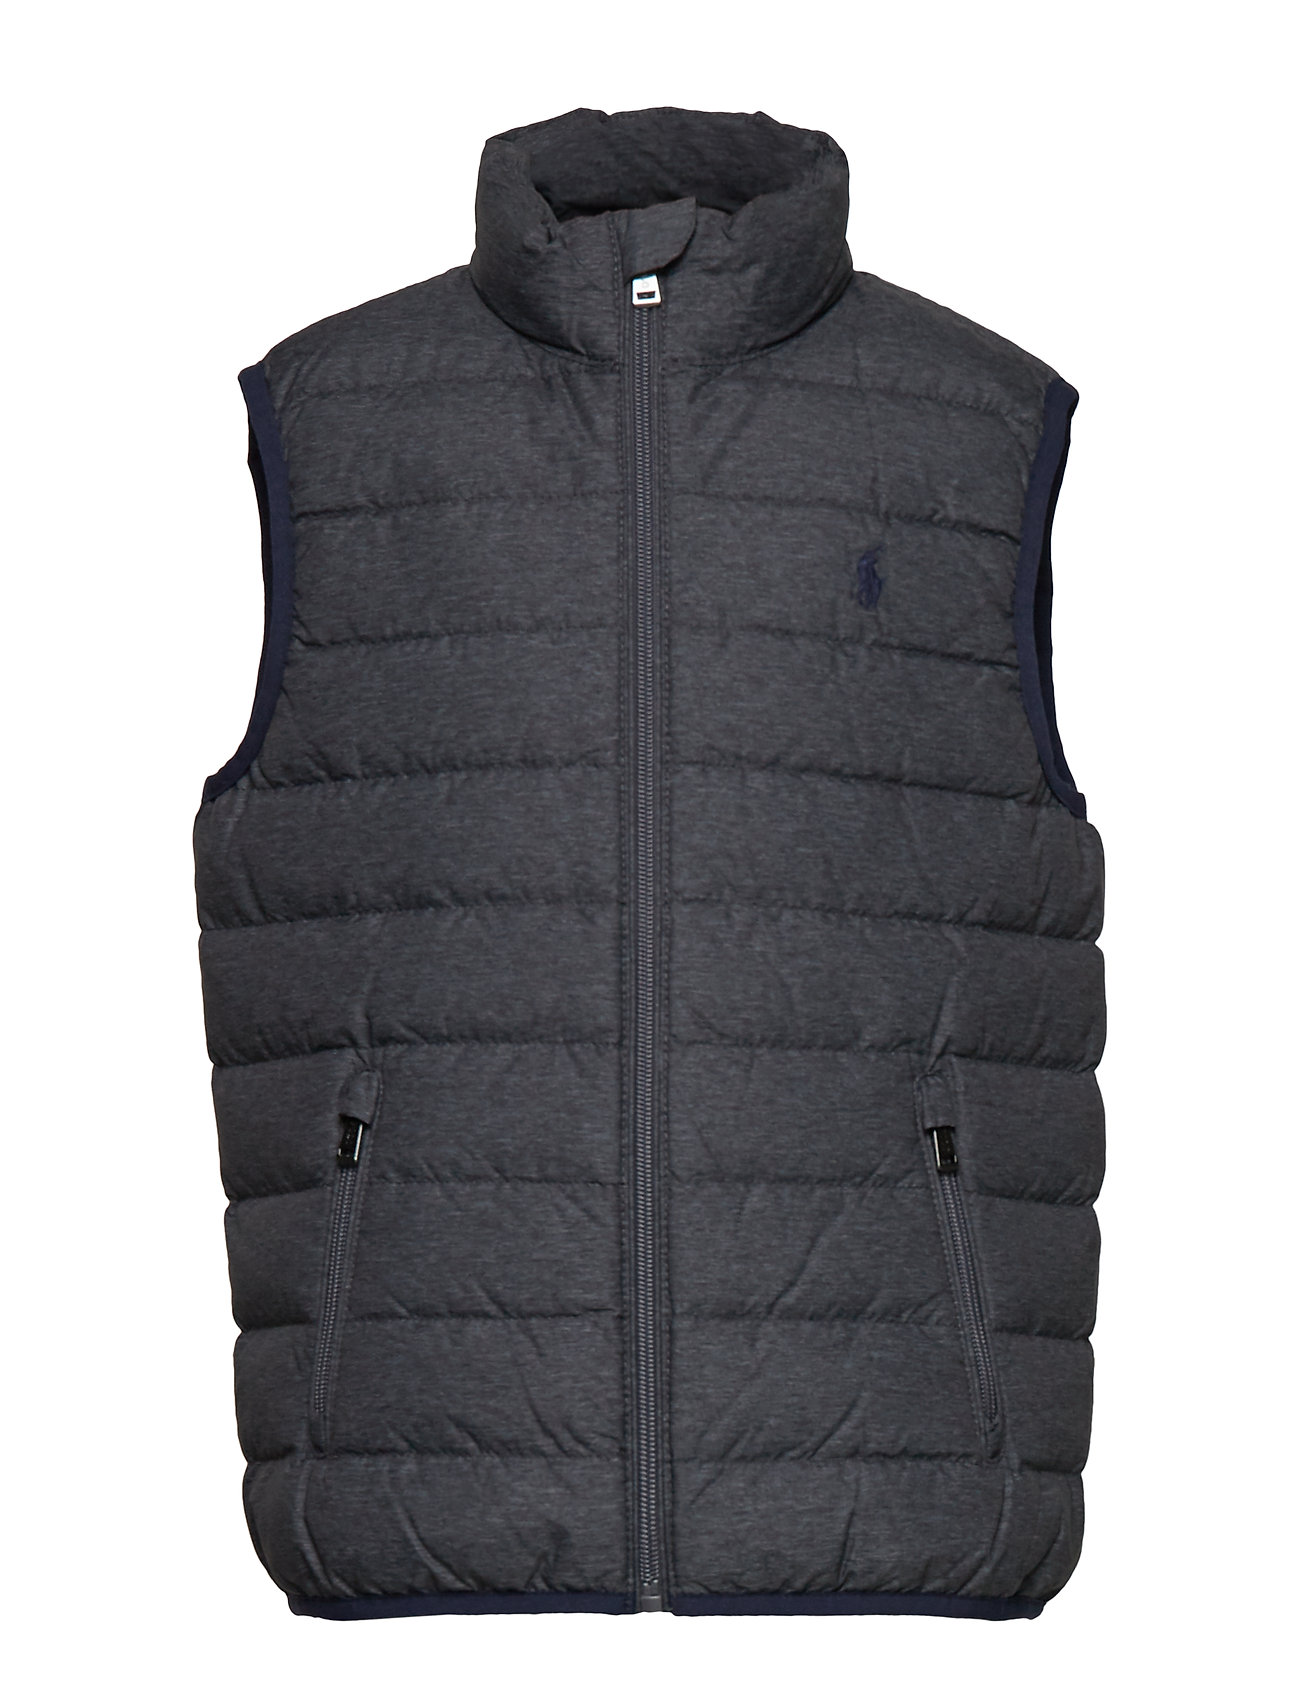 Ralph Lauren Kids Packable Quilted Down Vest - MECHANIC GREY